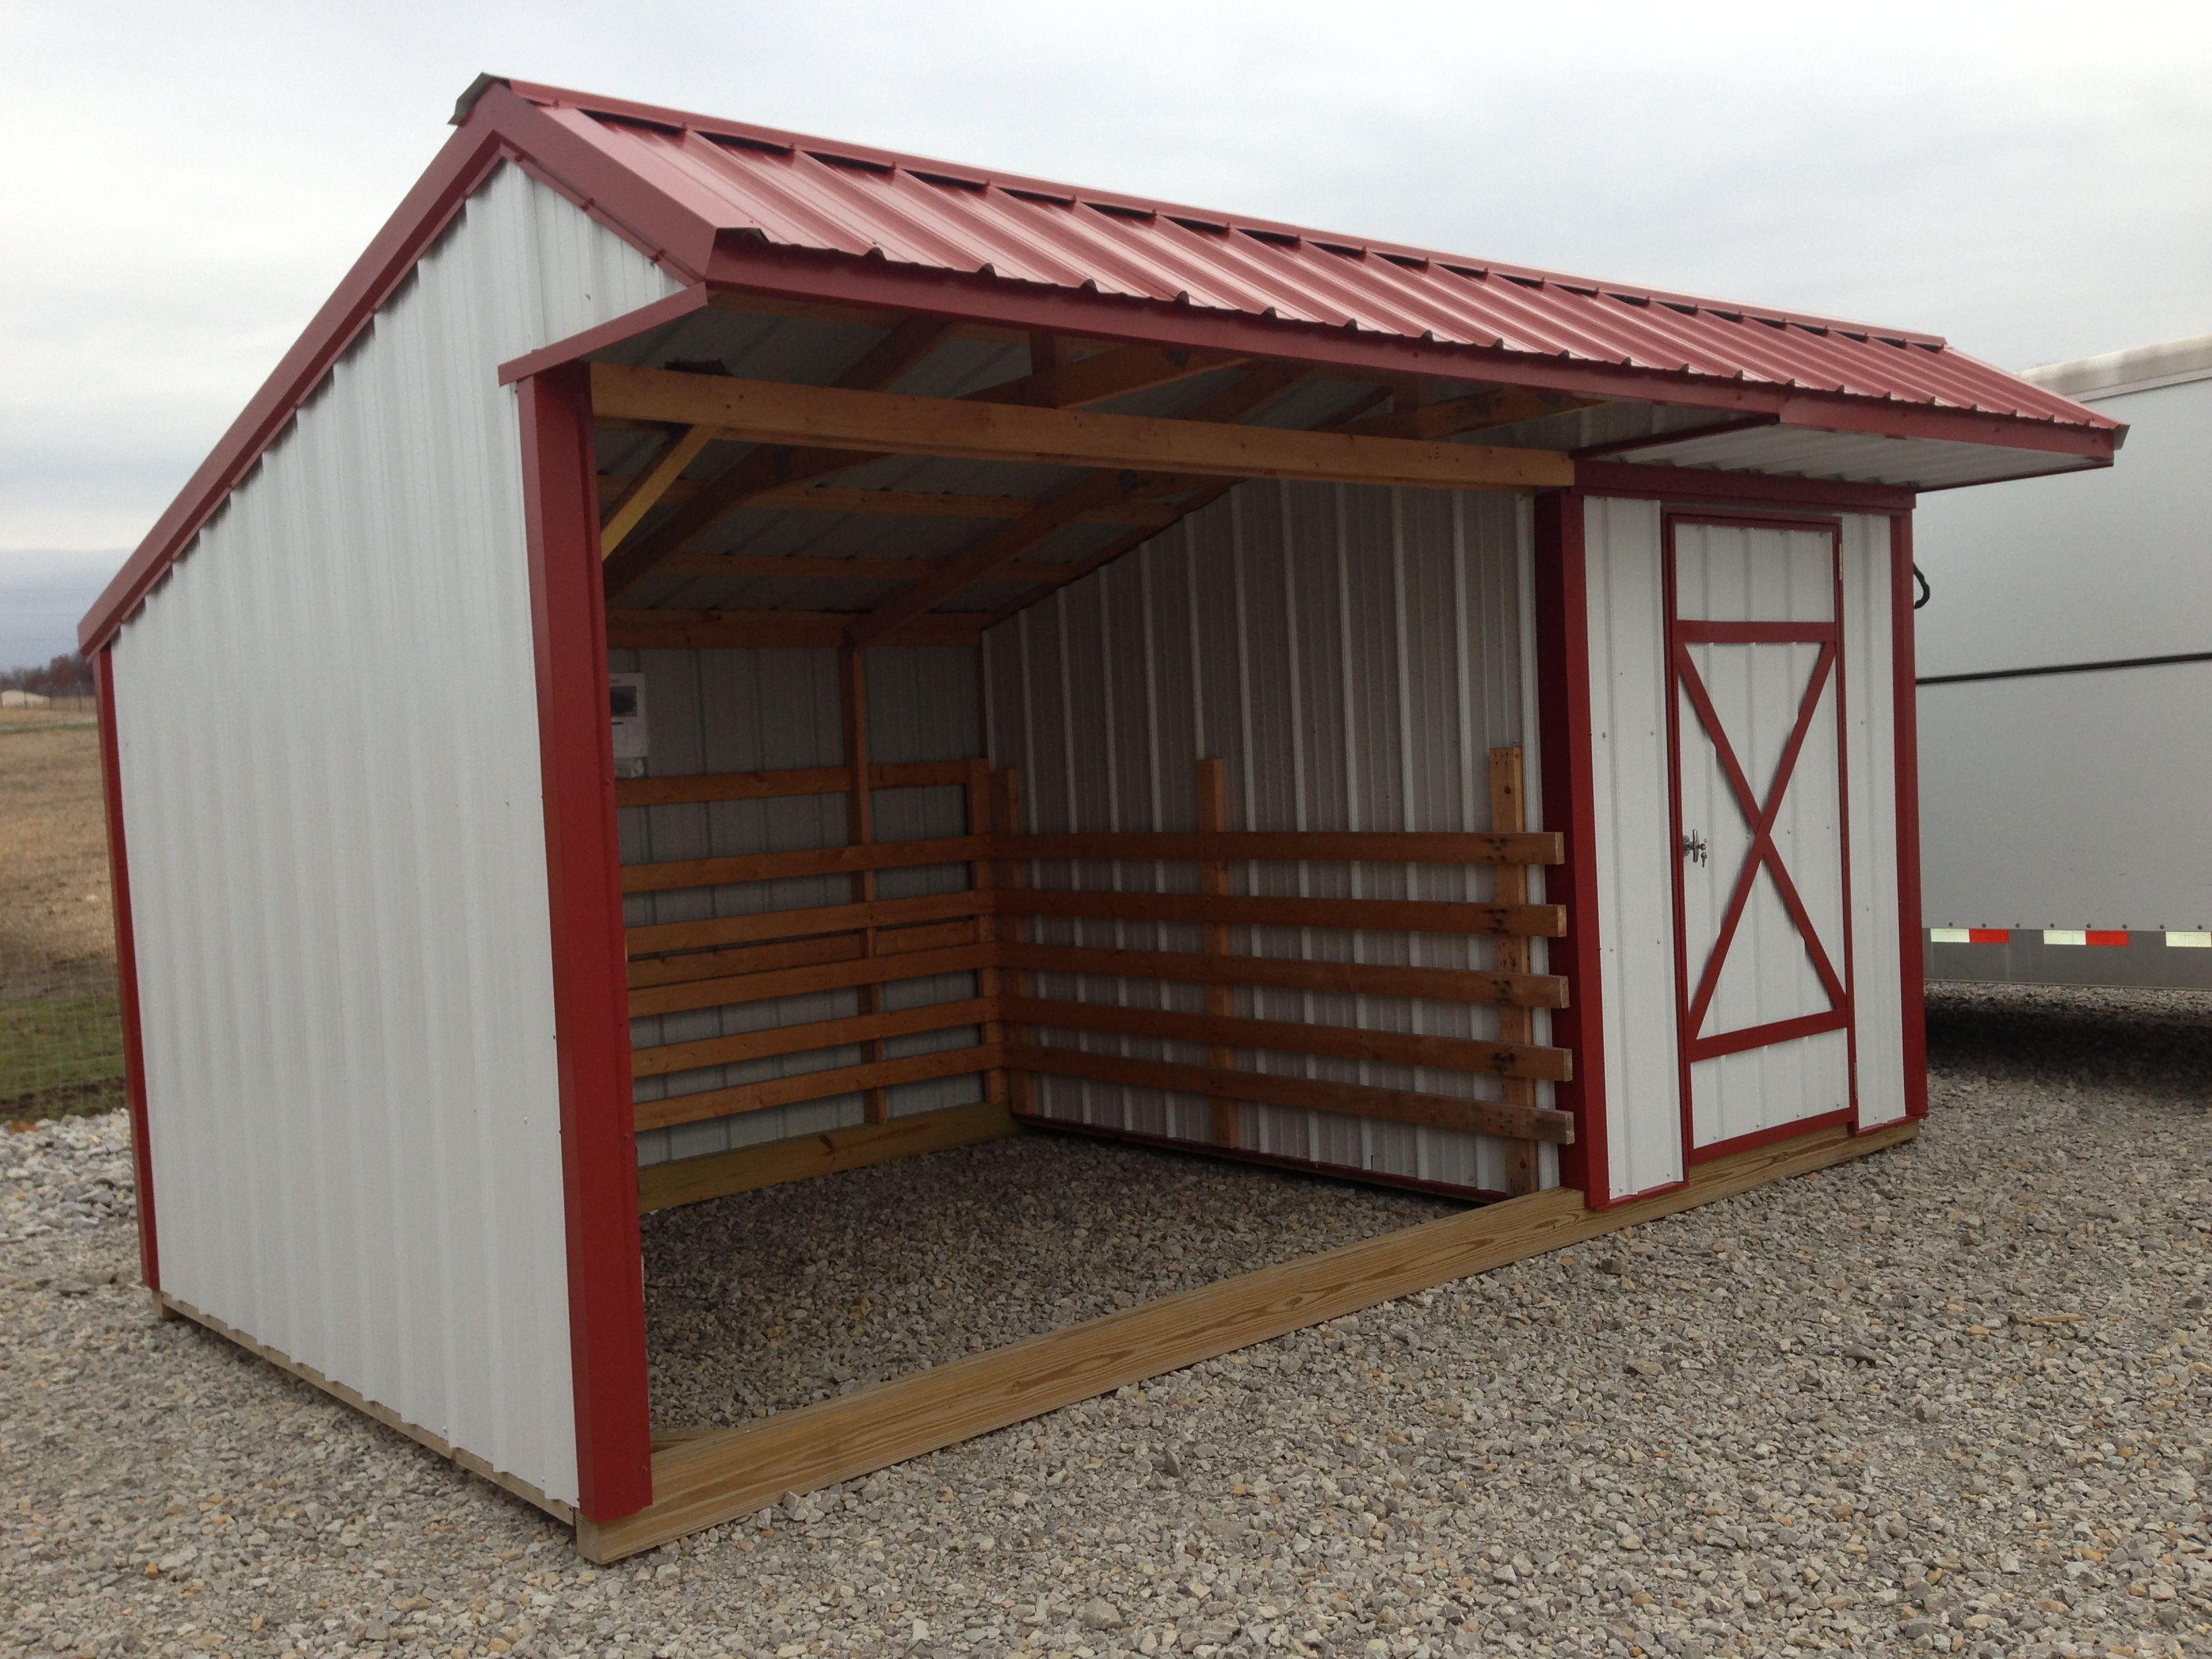 Portable Cow Shelters : Portable pet and livestock shelters in cameron mo